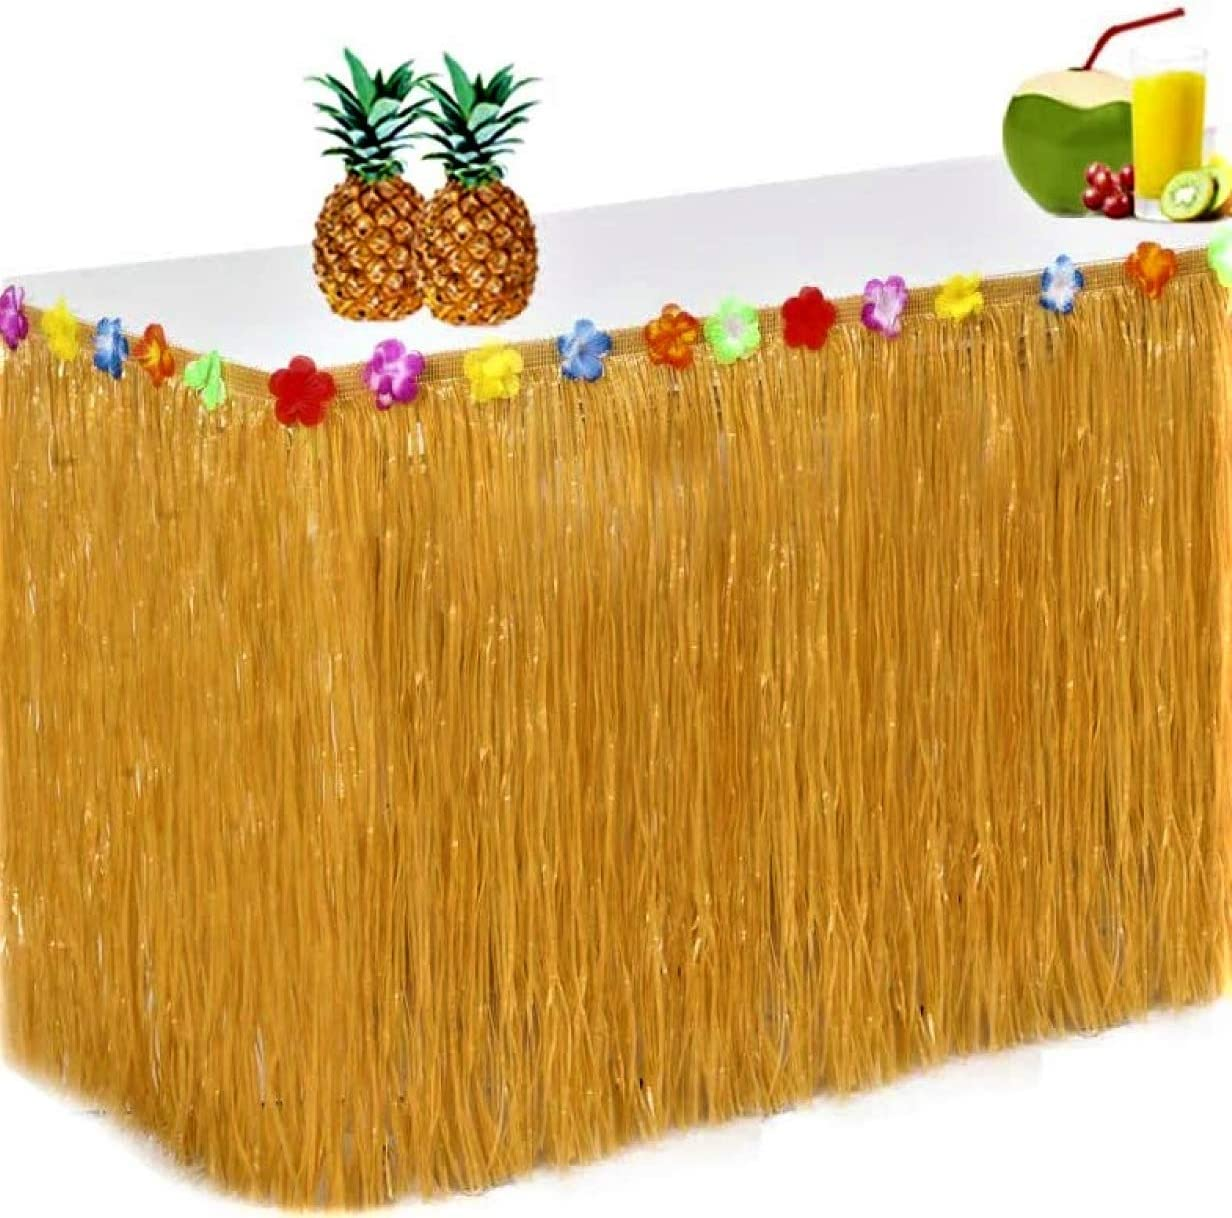 King Luau Deluxe Grass Table Skirt Raff 9ft x shop - 29in